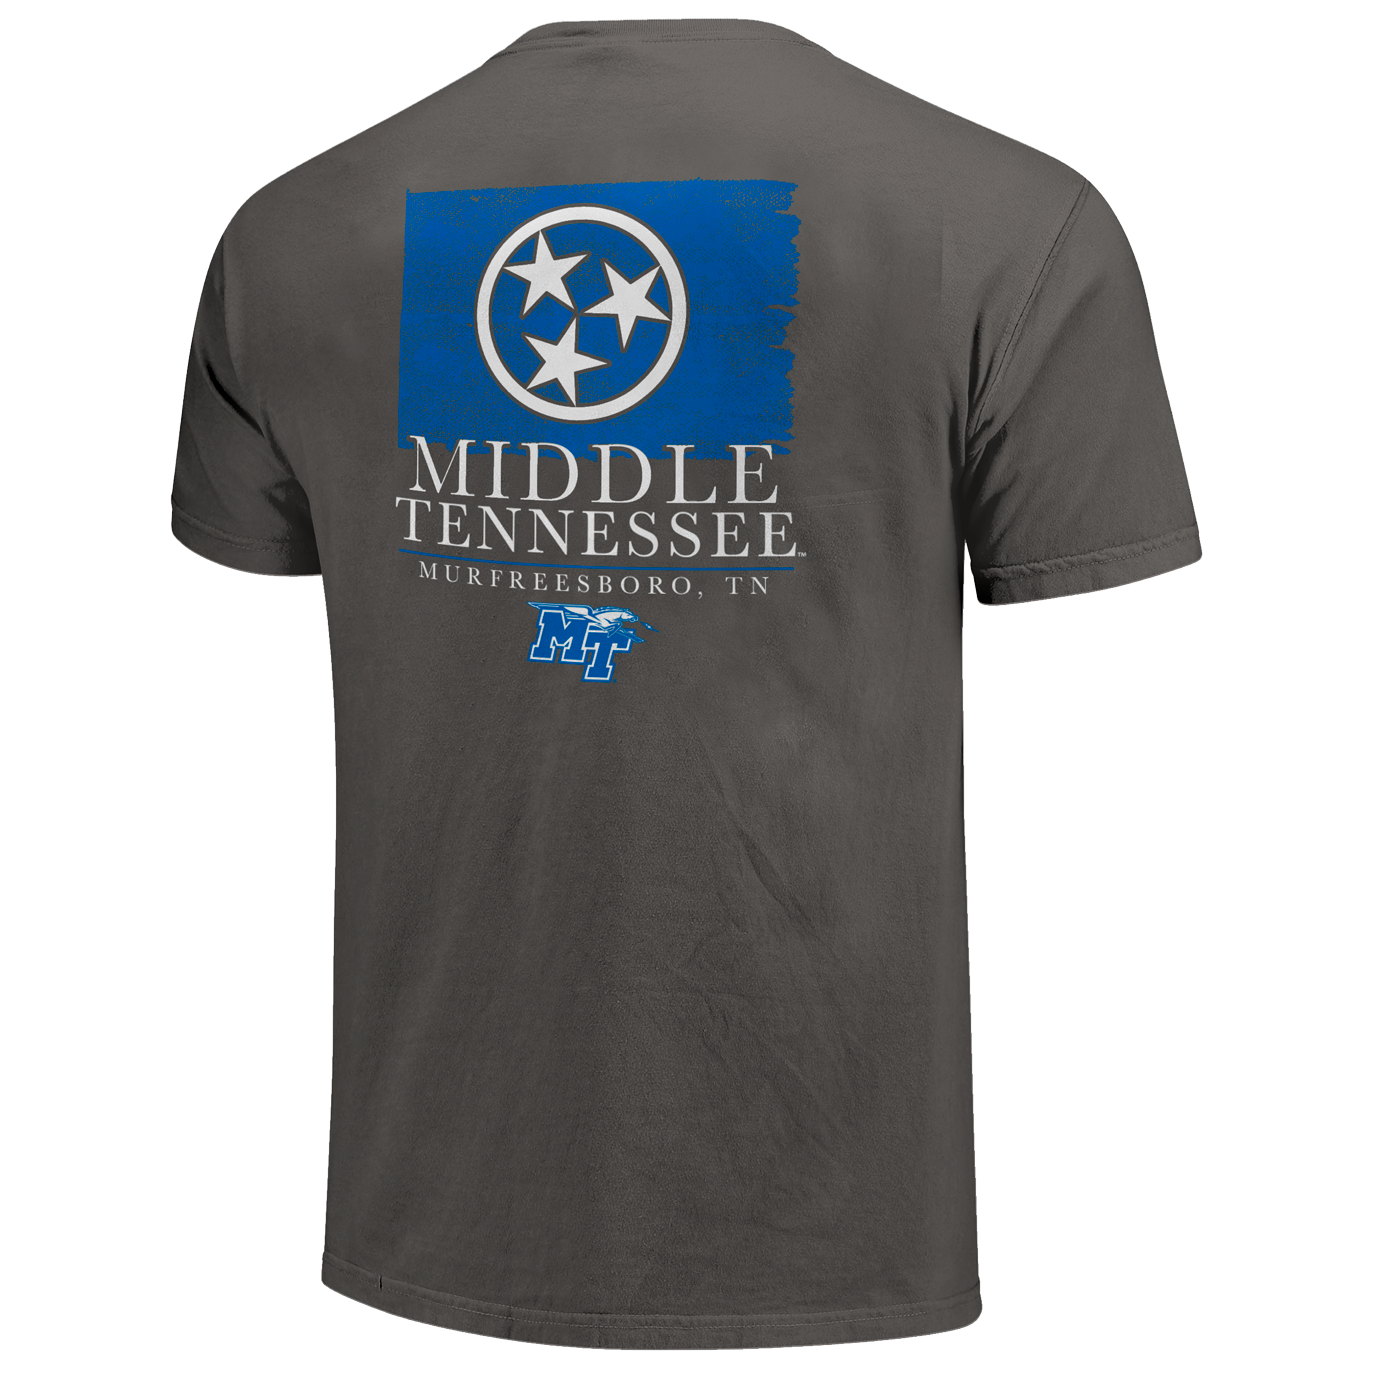 Middle Tennessee Watercolor State Flag Comfort Colors Shirt